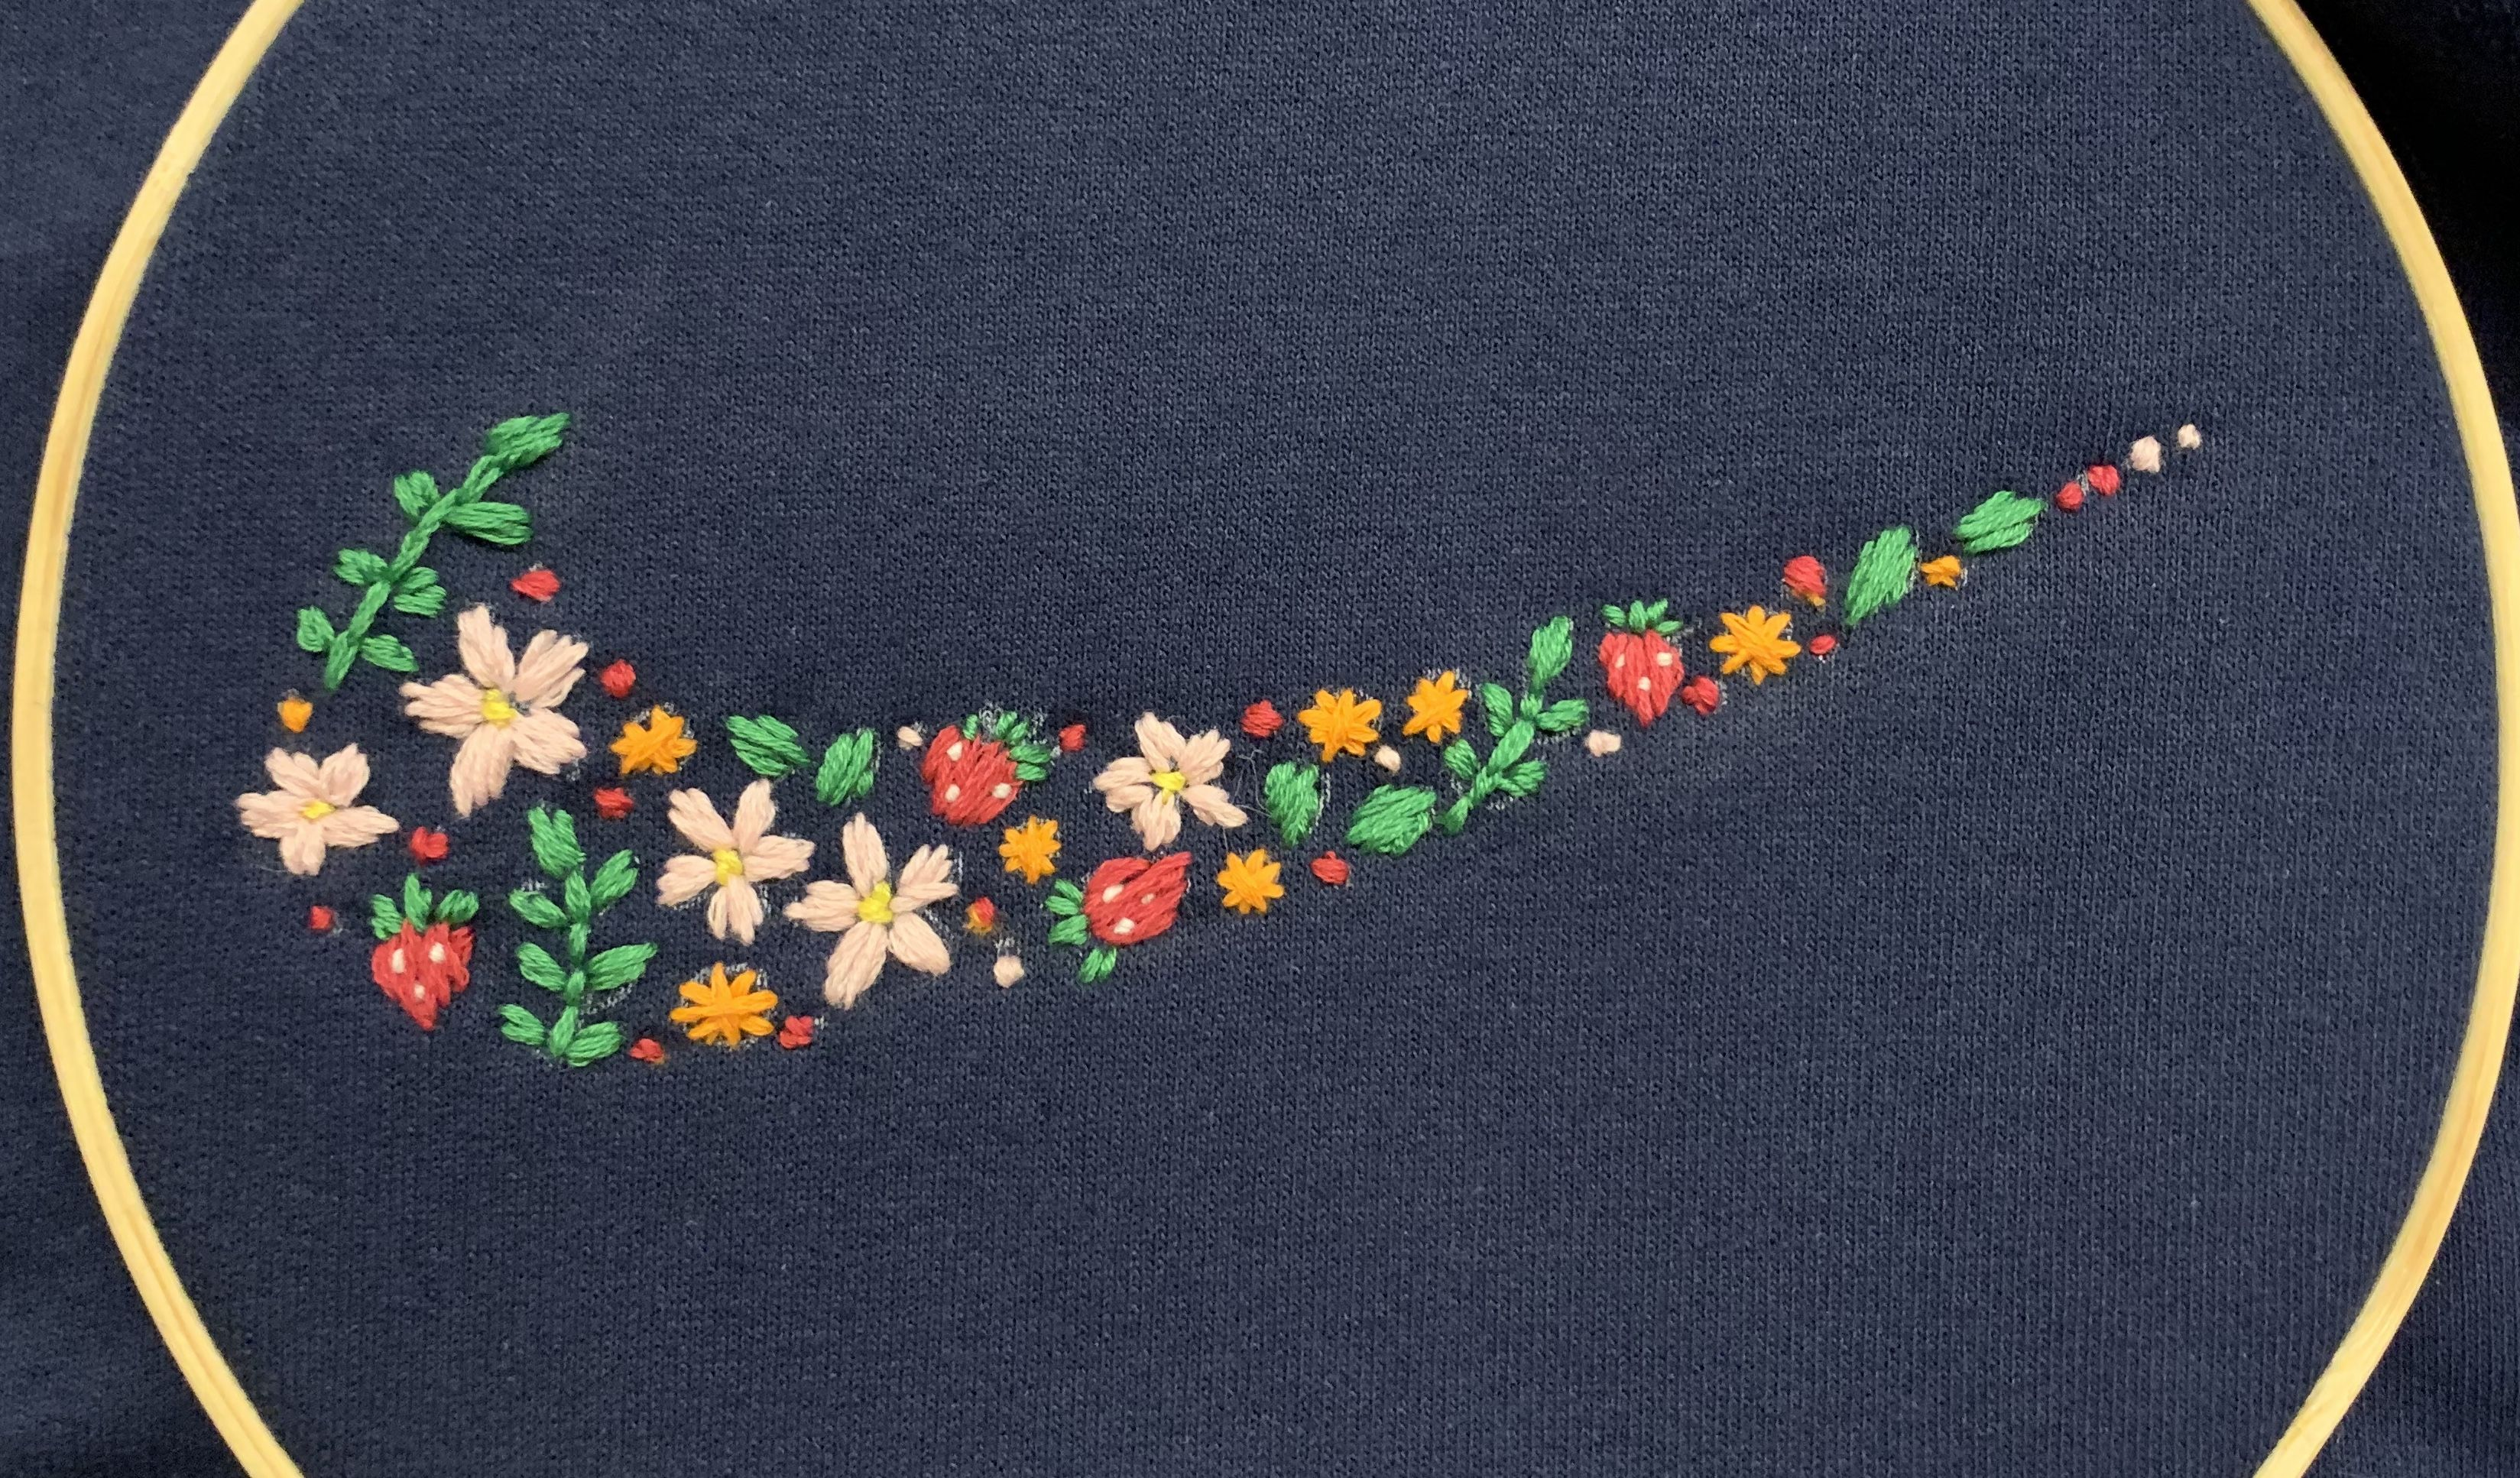 Floral Nike Symbol Sweatshirt In 2020 Clothes Embroidery Diy Flower Embroidery Designs Sewing Embroidery Designs